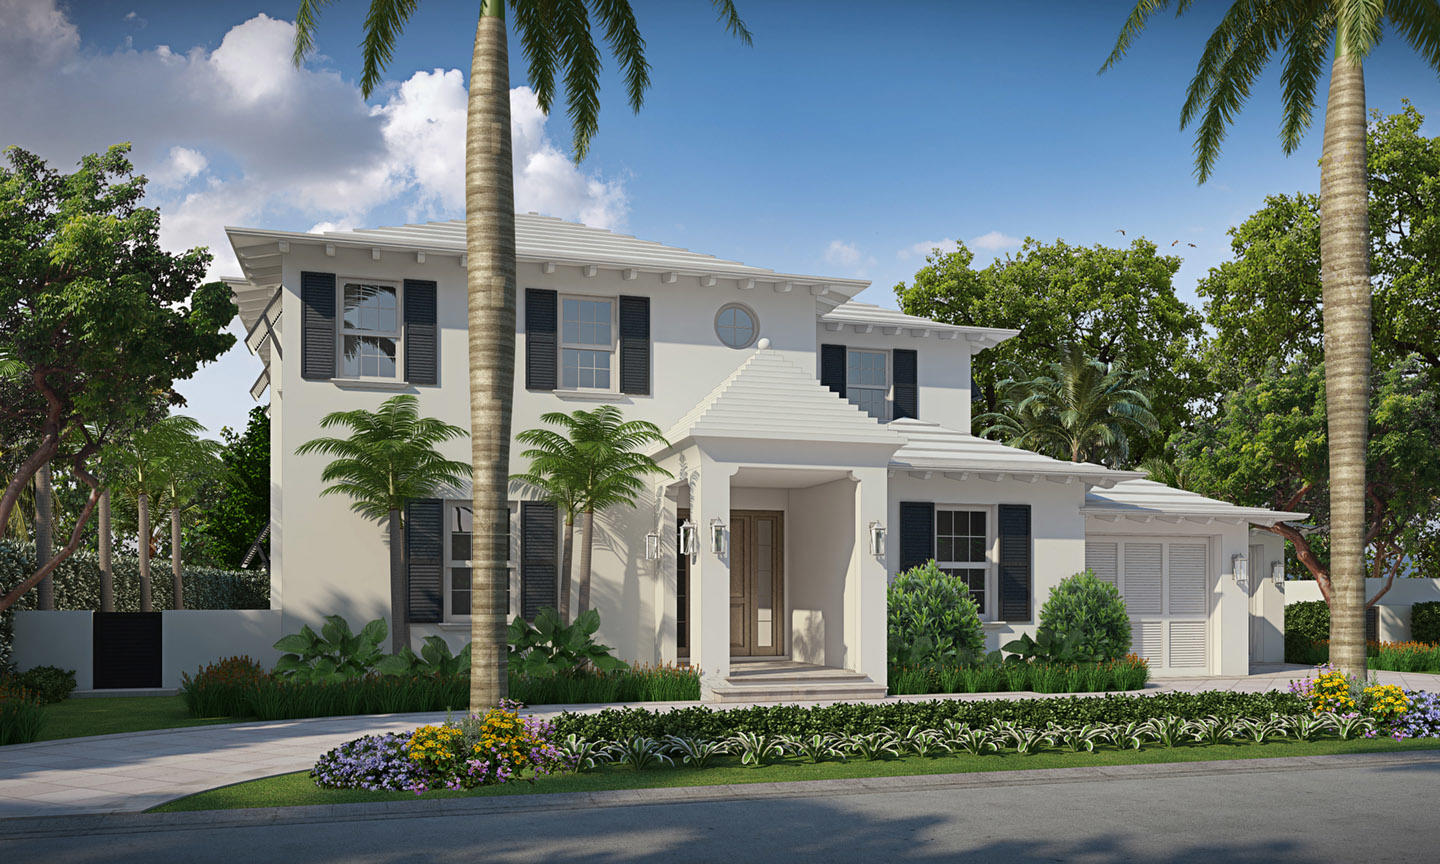 201 Sanford Avenue, Palm Beach, Florida 33480, 4 Bedrooms Bedrooms, ,4.2 BathroomsBathrooms,Single Family,For Sale,Sanford,RX-10486457